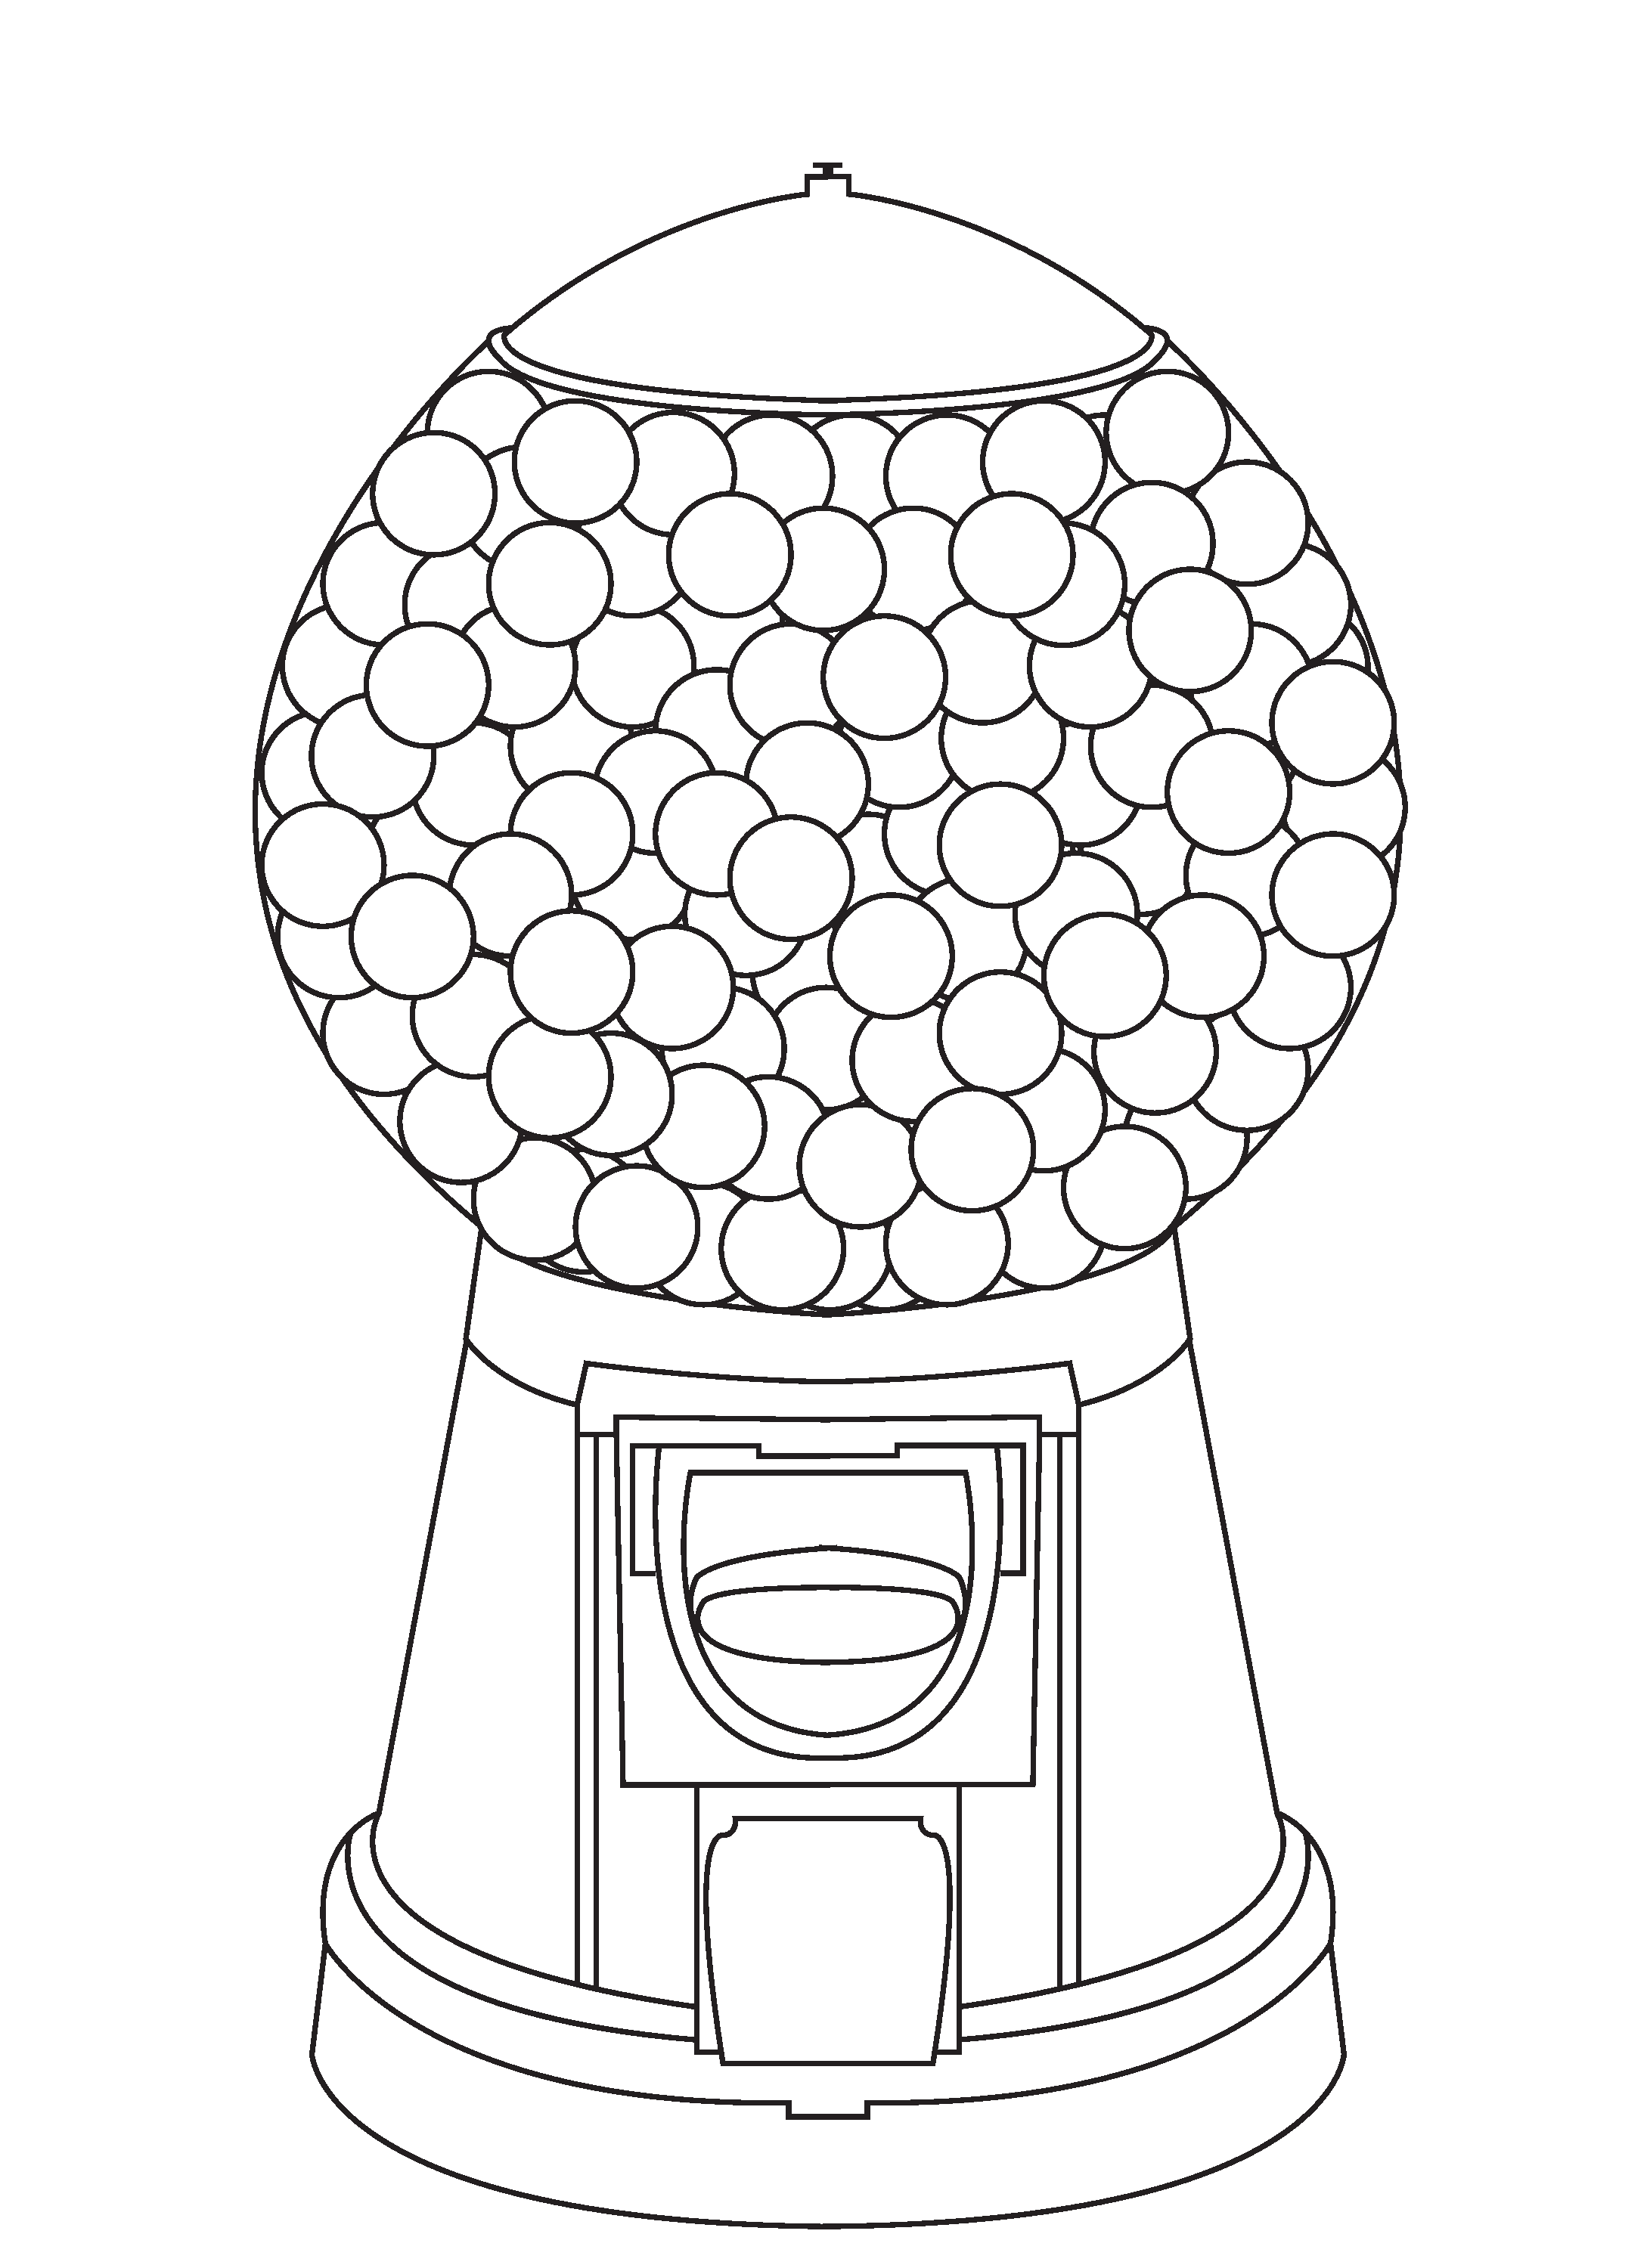 Gumball Machine Coloring Page